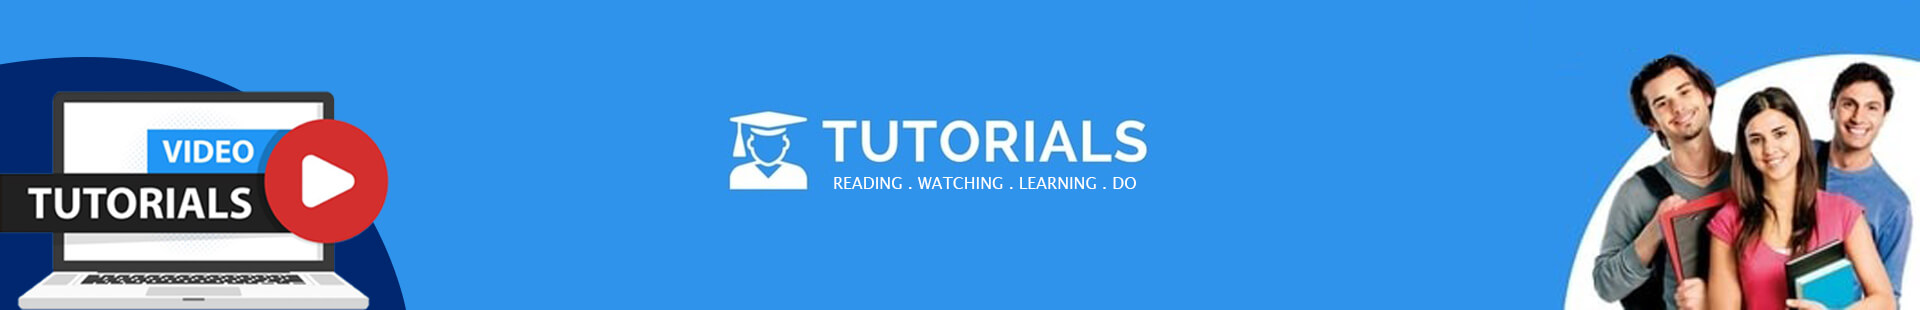 Banner for Tutorials